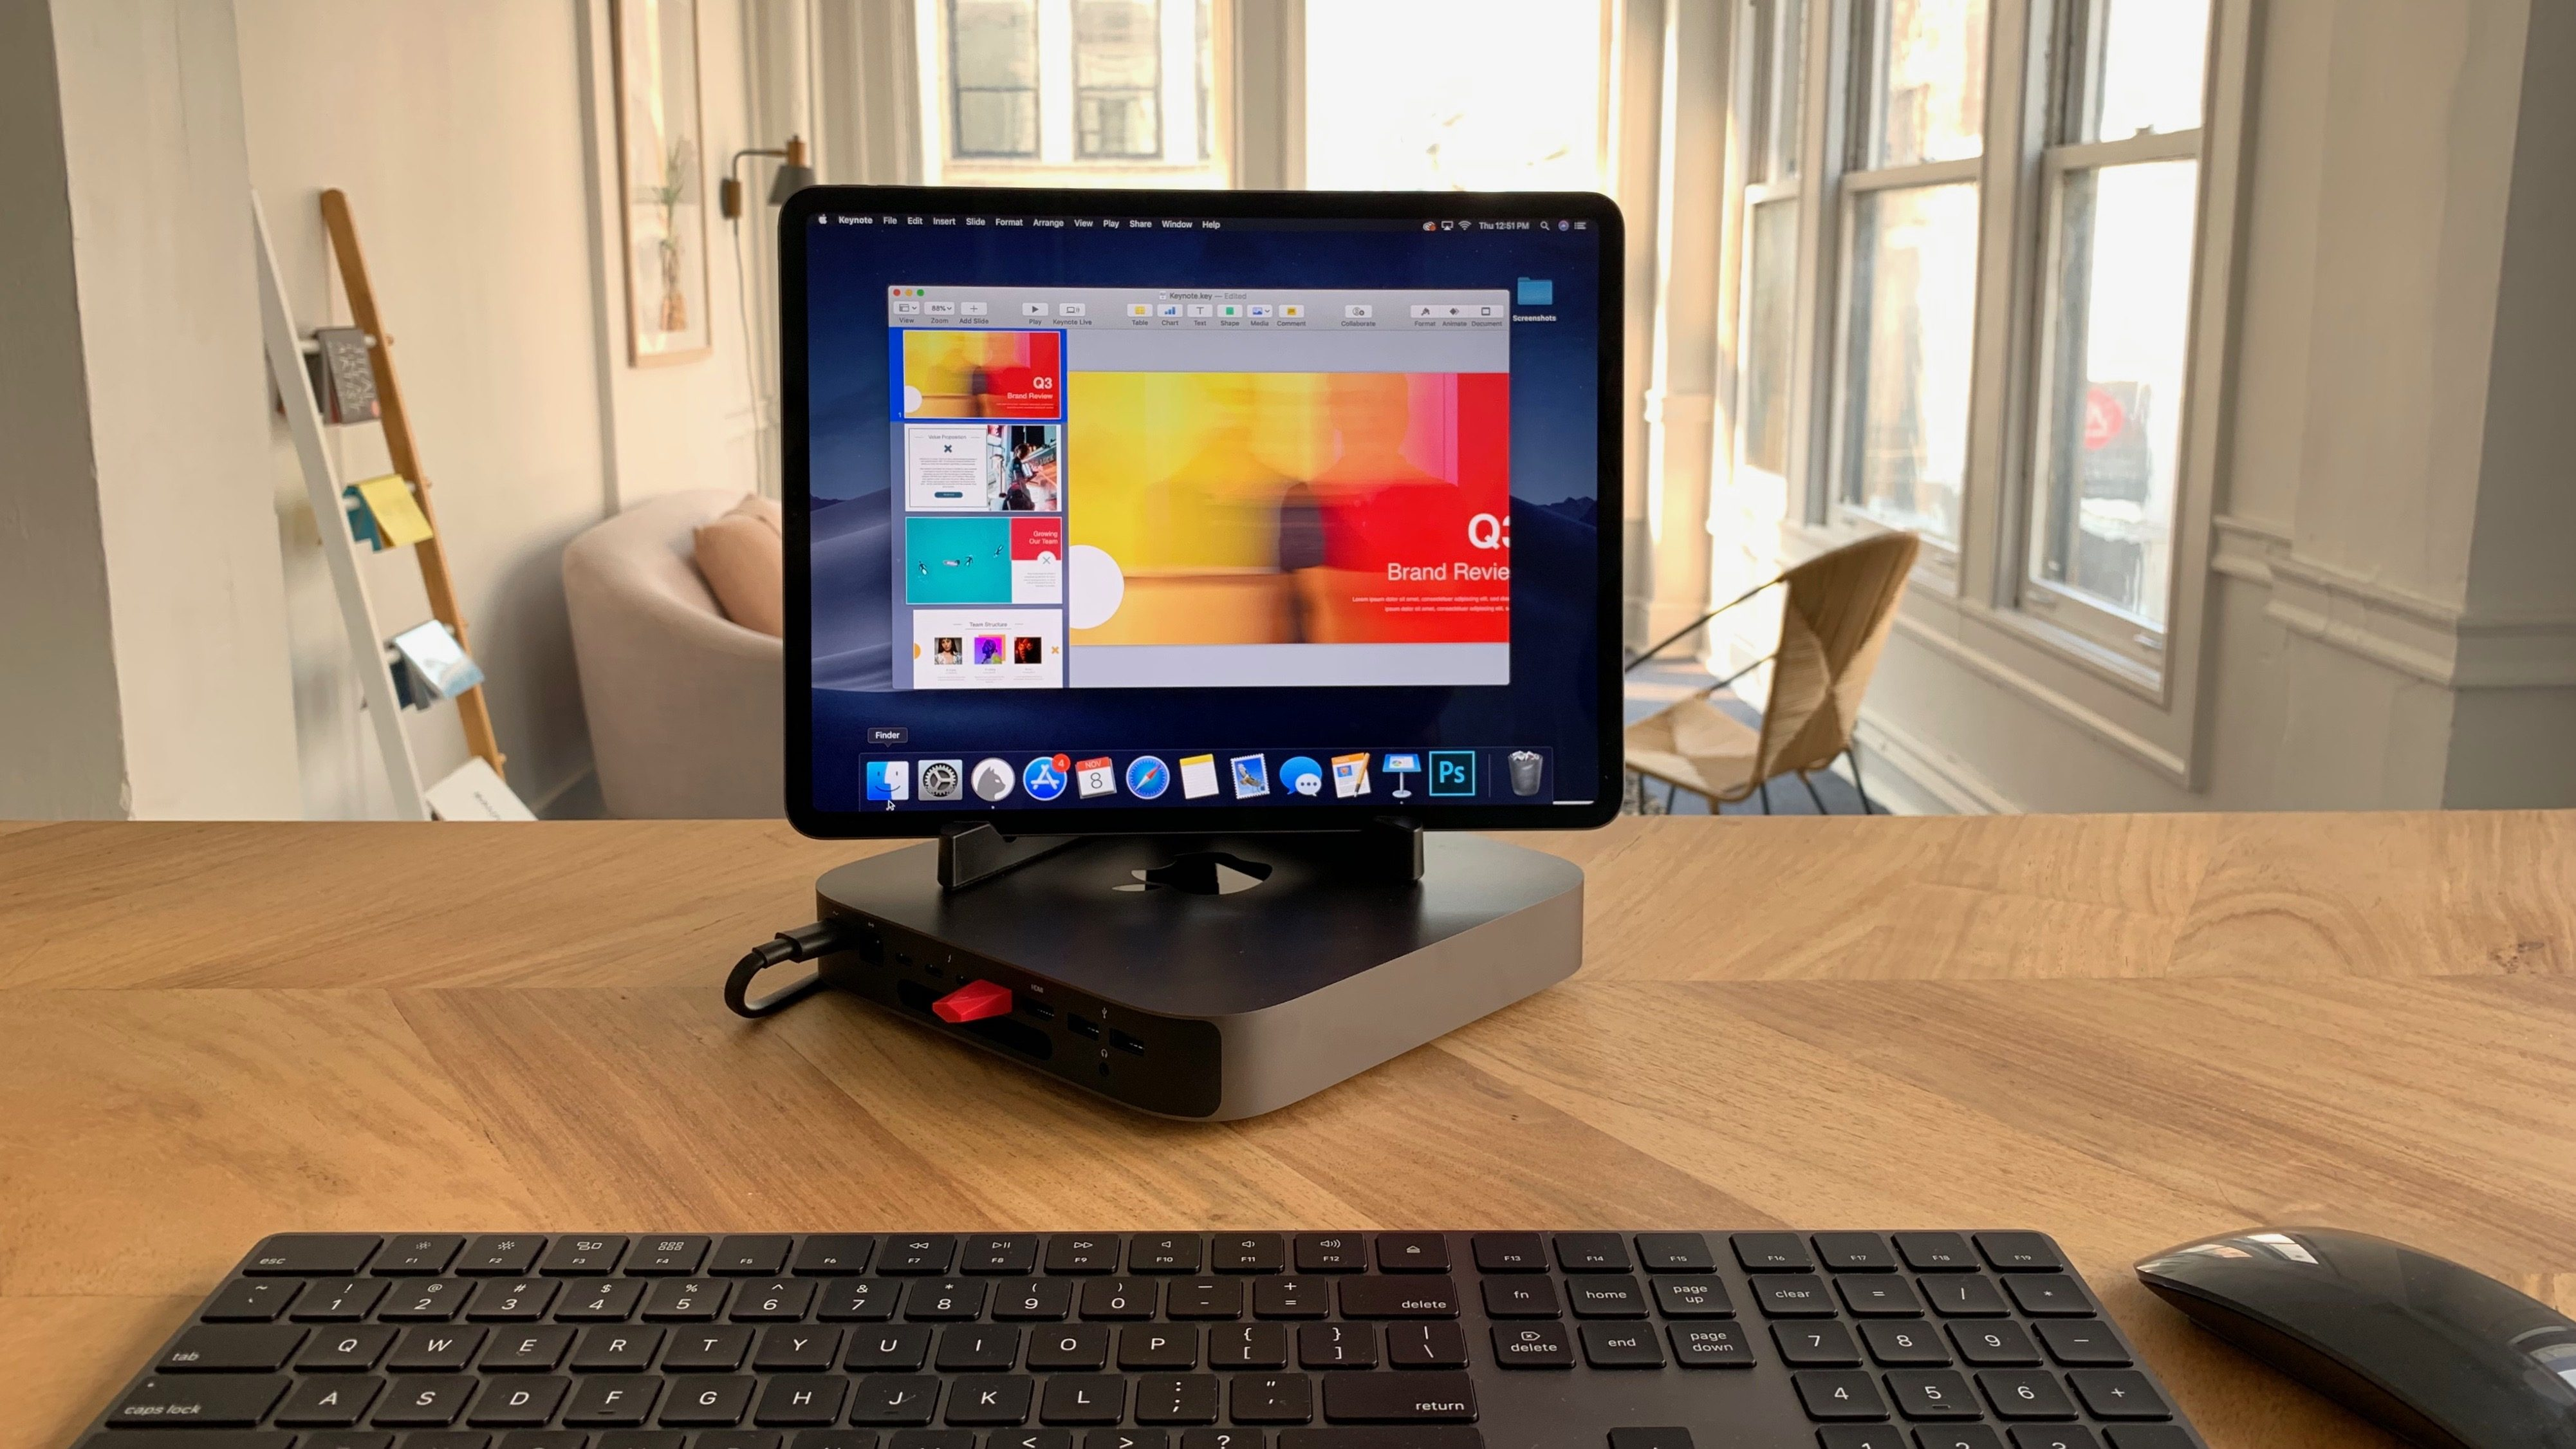 How to use the iPad Pro as a primary monitor with Mac mini